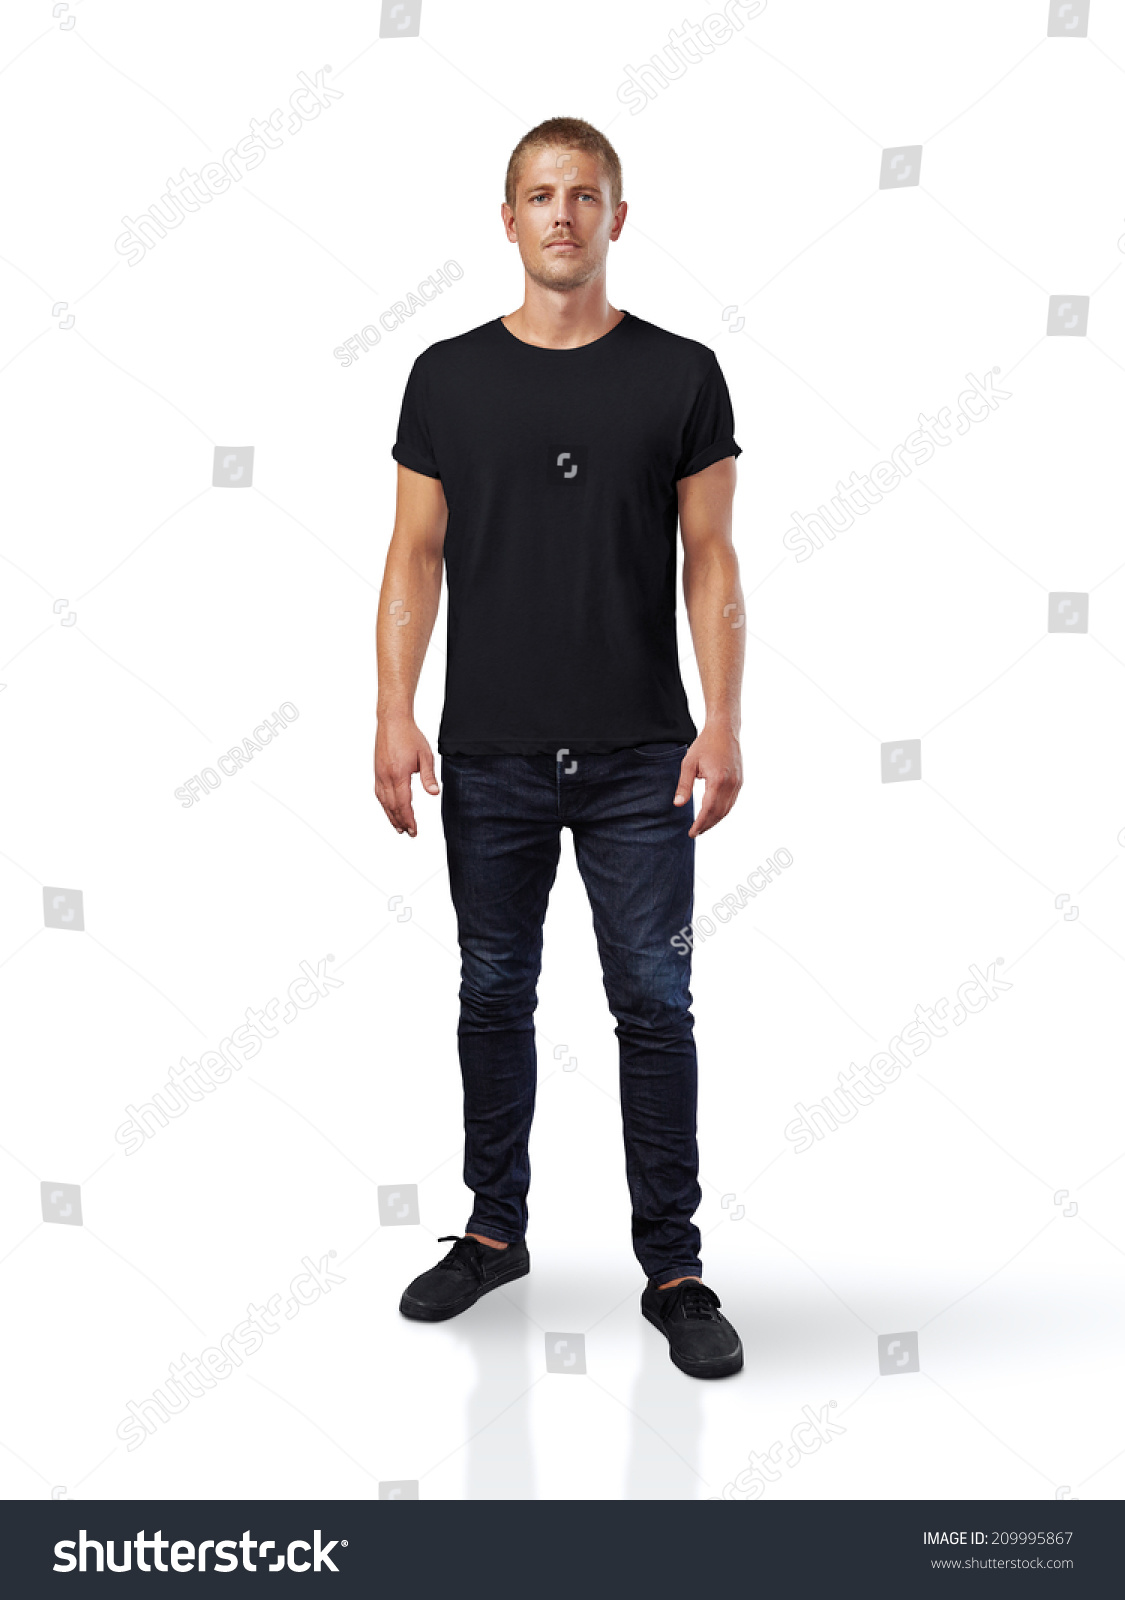 Man Wearing Black T Shirt